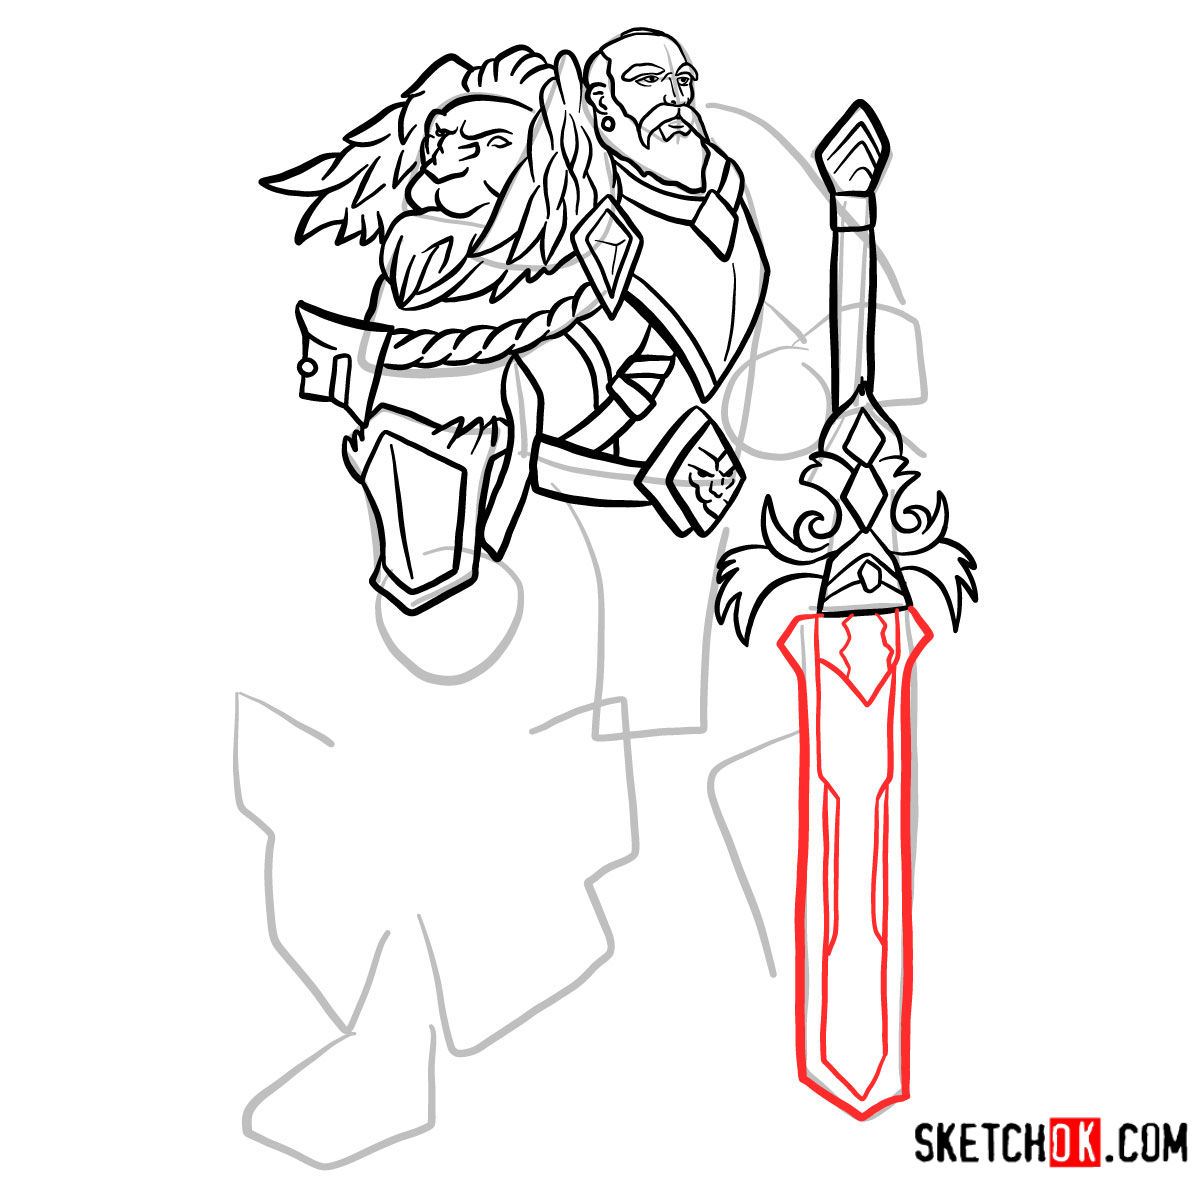 How to draw Lord Anduin Lothar | World of Warcraft - step 11